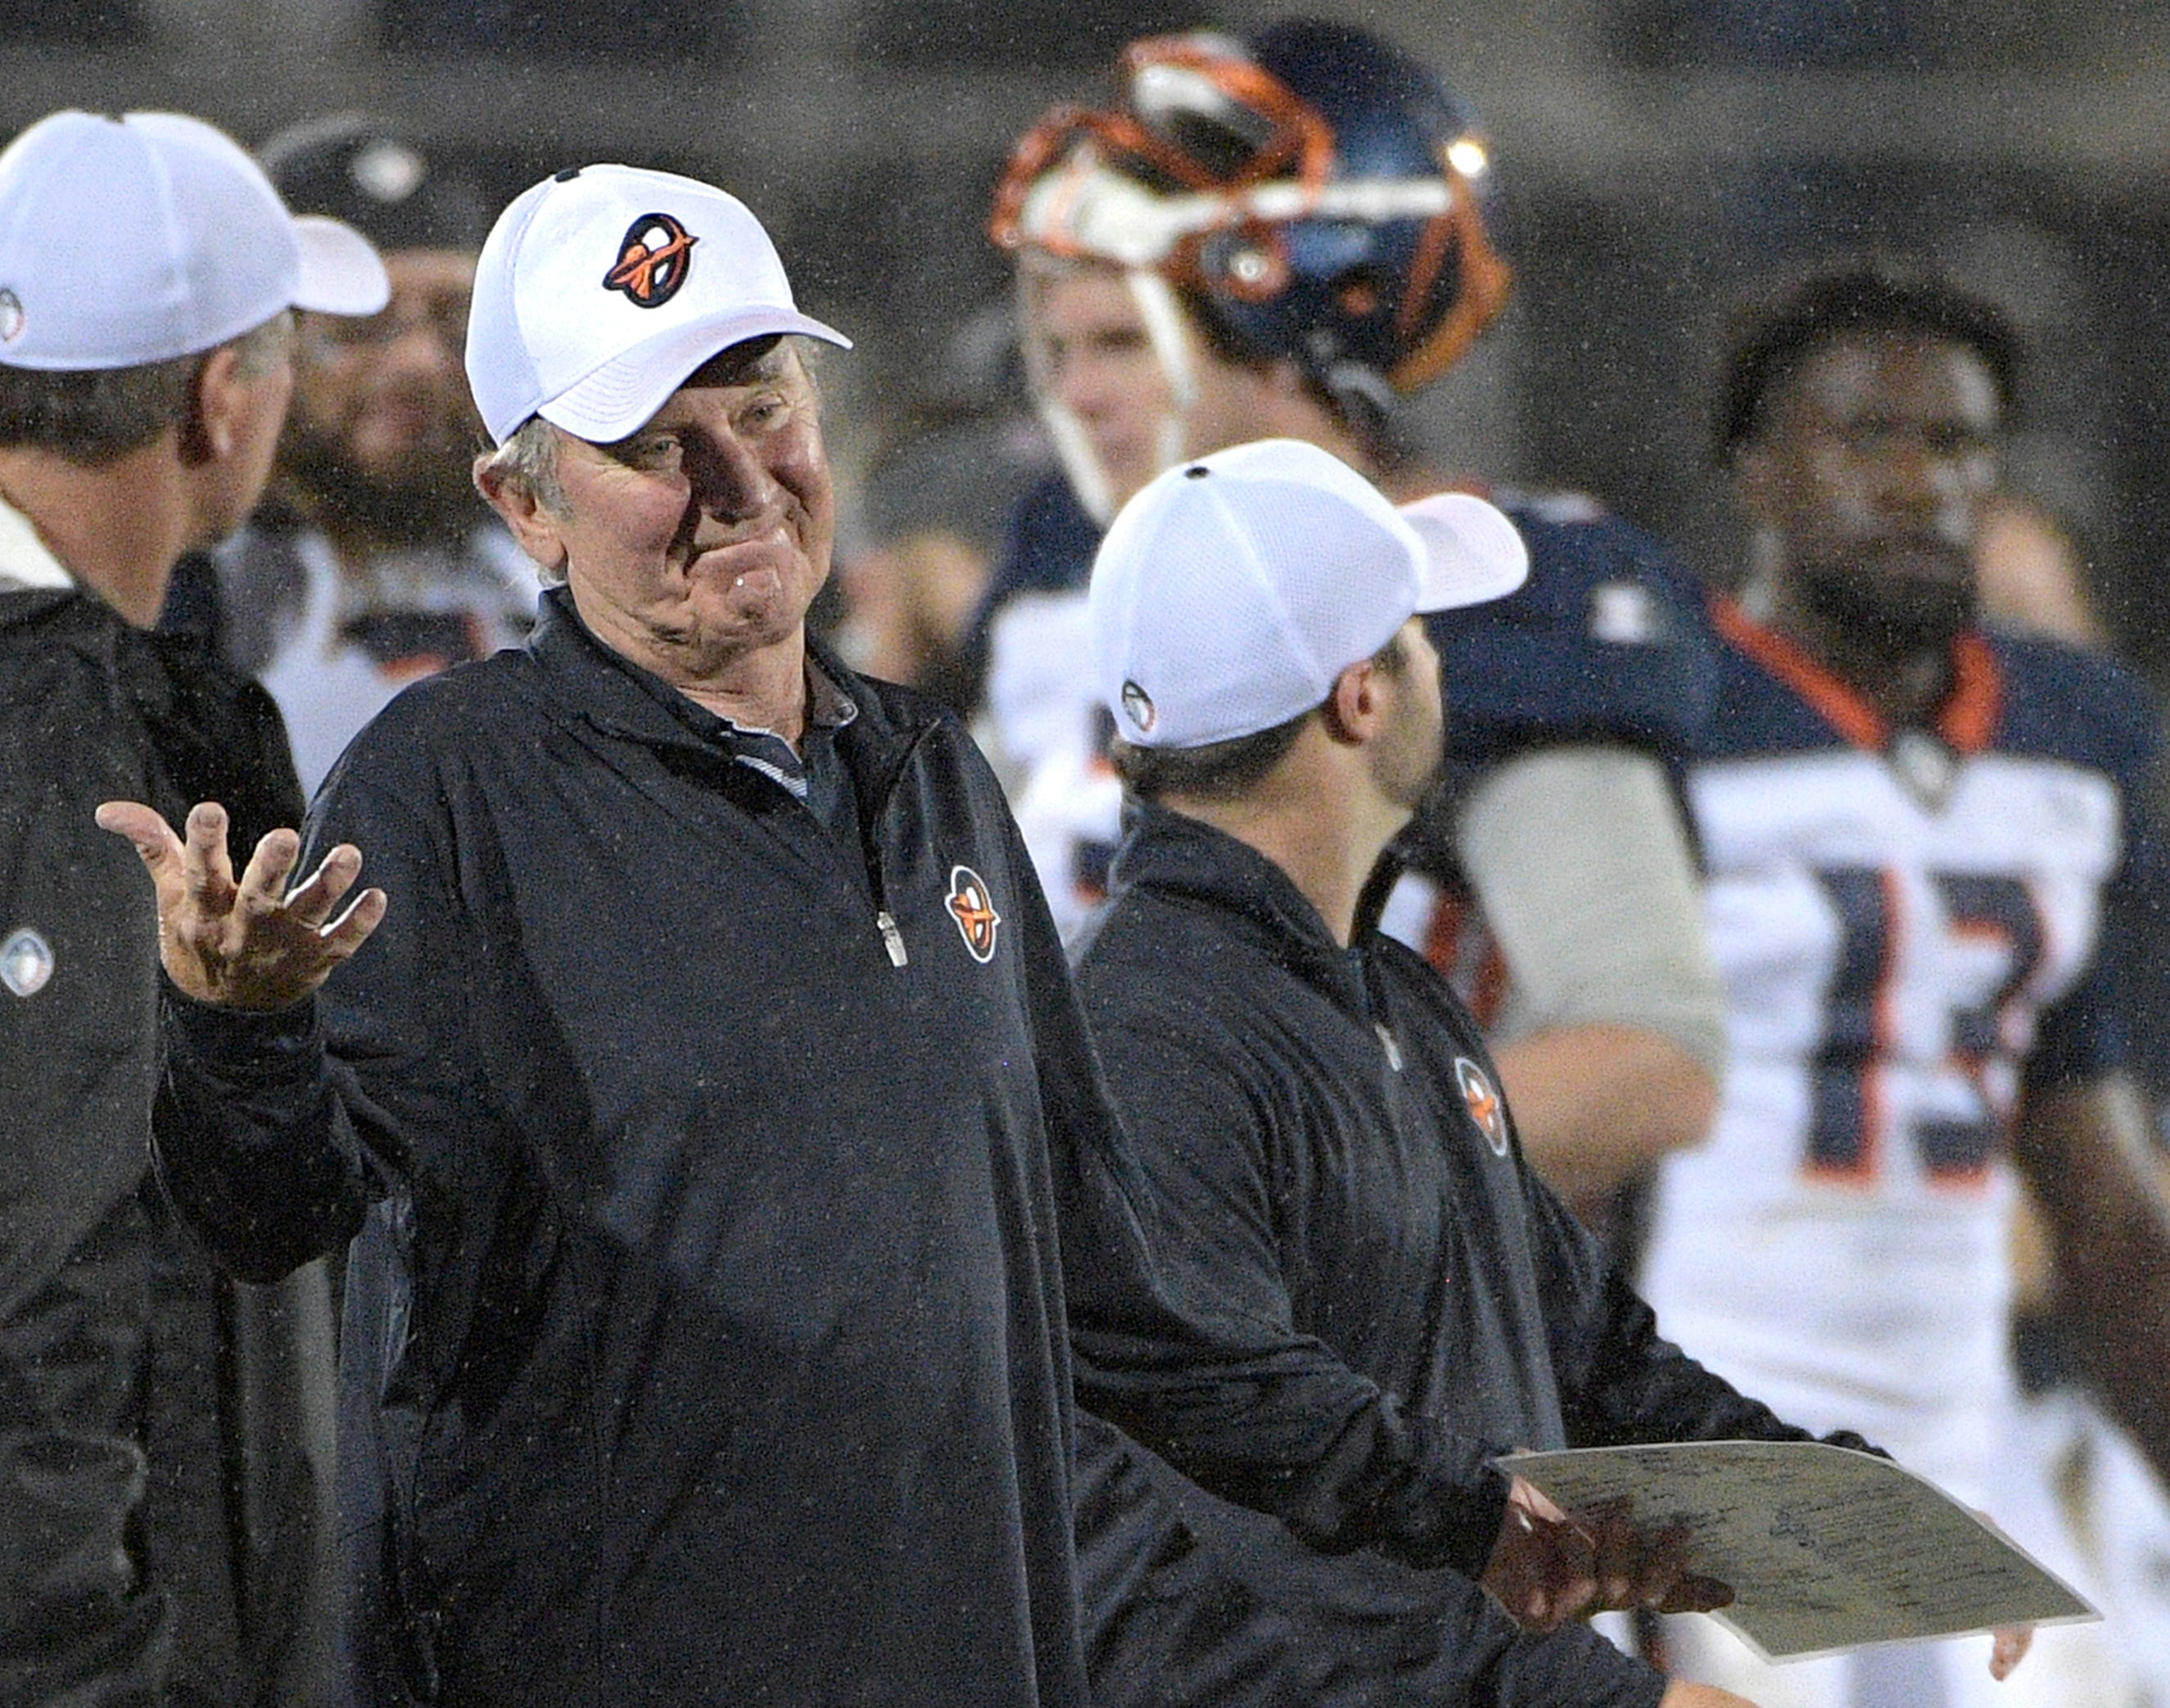 Orlando Apollos coach Steve Spurrier is mic'd up during games.